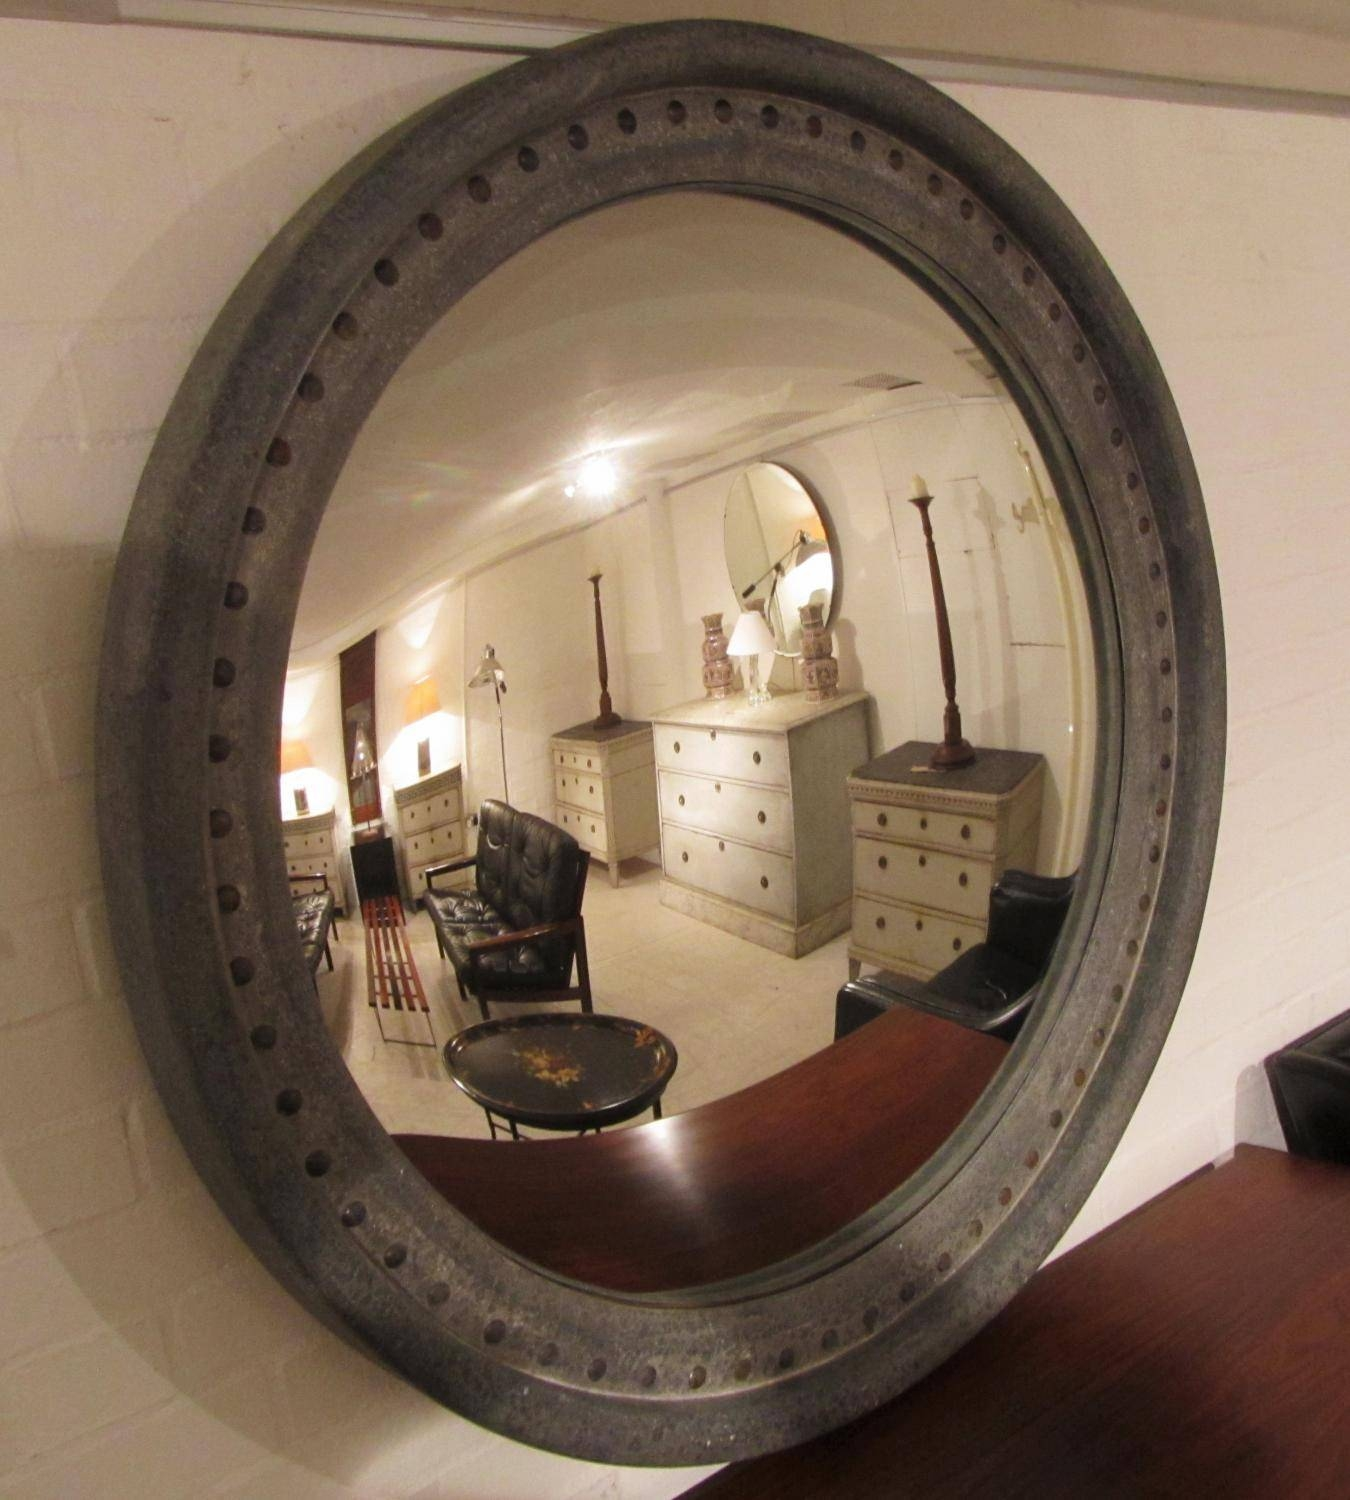 A Very Large Convex Mirror In Mirrors intended for Large Convex Mirrors (Image 2 of 25)